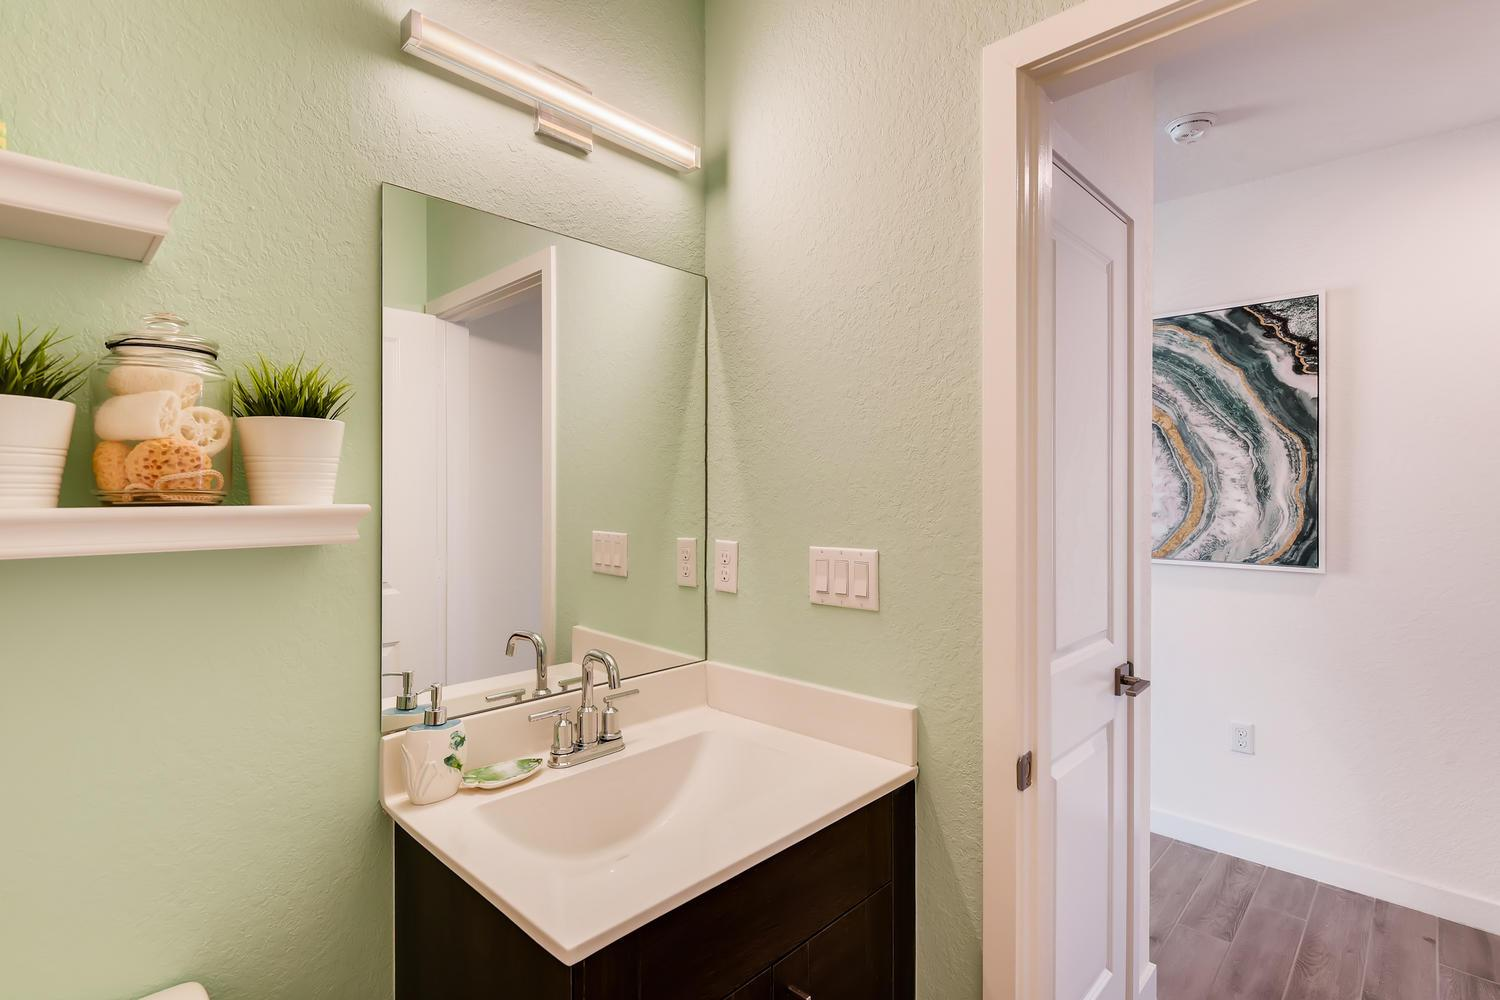 Bathroom featured in the Allex By D.R. Horton in Miami-Dade County, FL